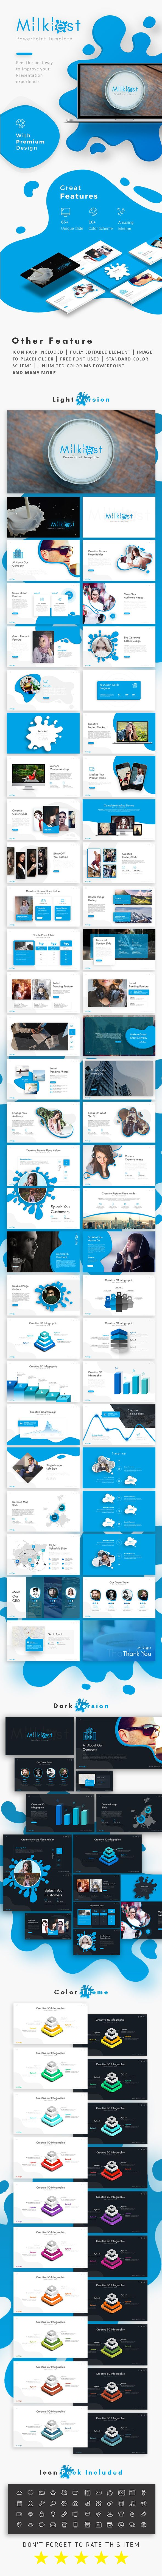 #Milkiest Creative Presentation Template - #Creative #PowerPoint Templates